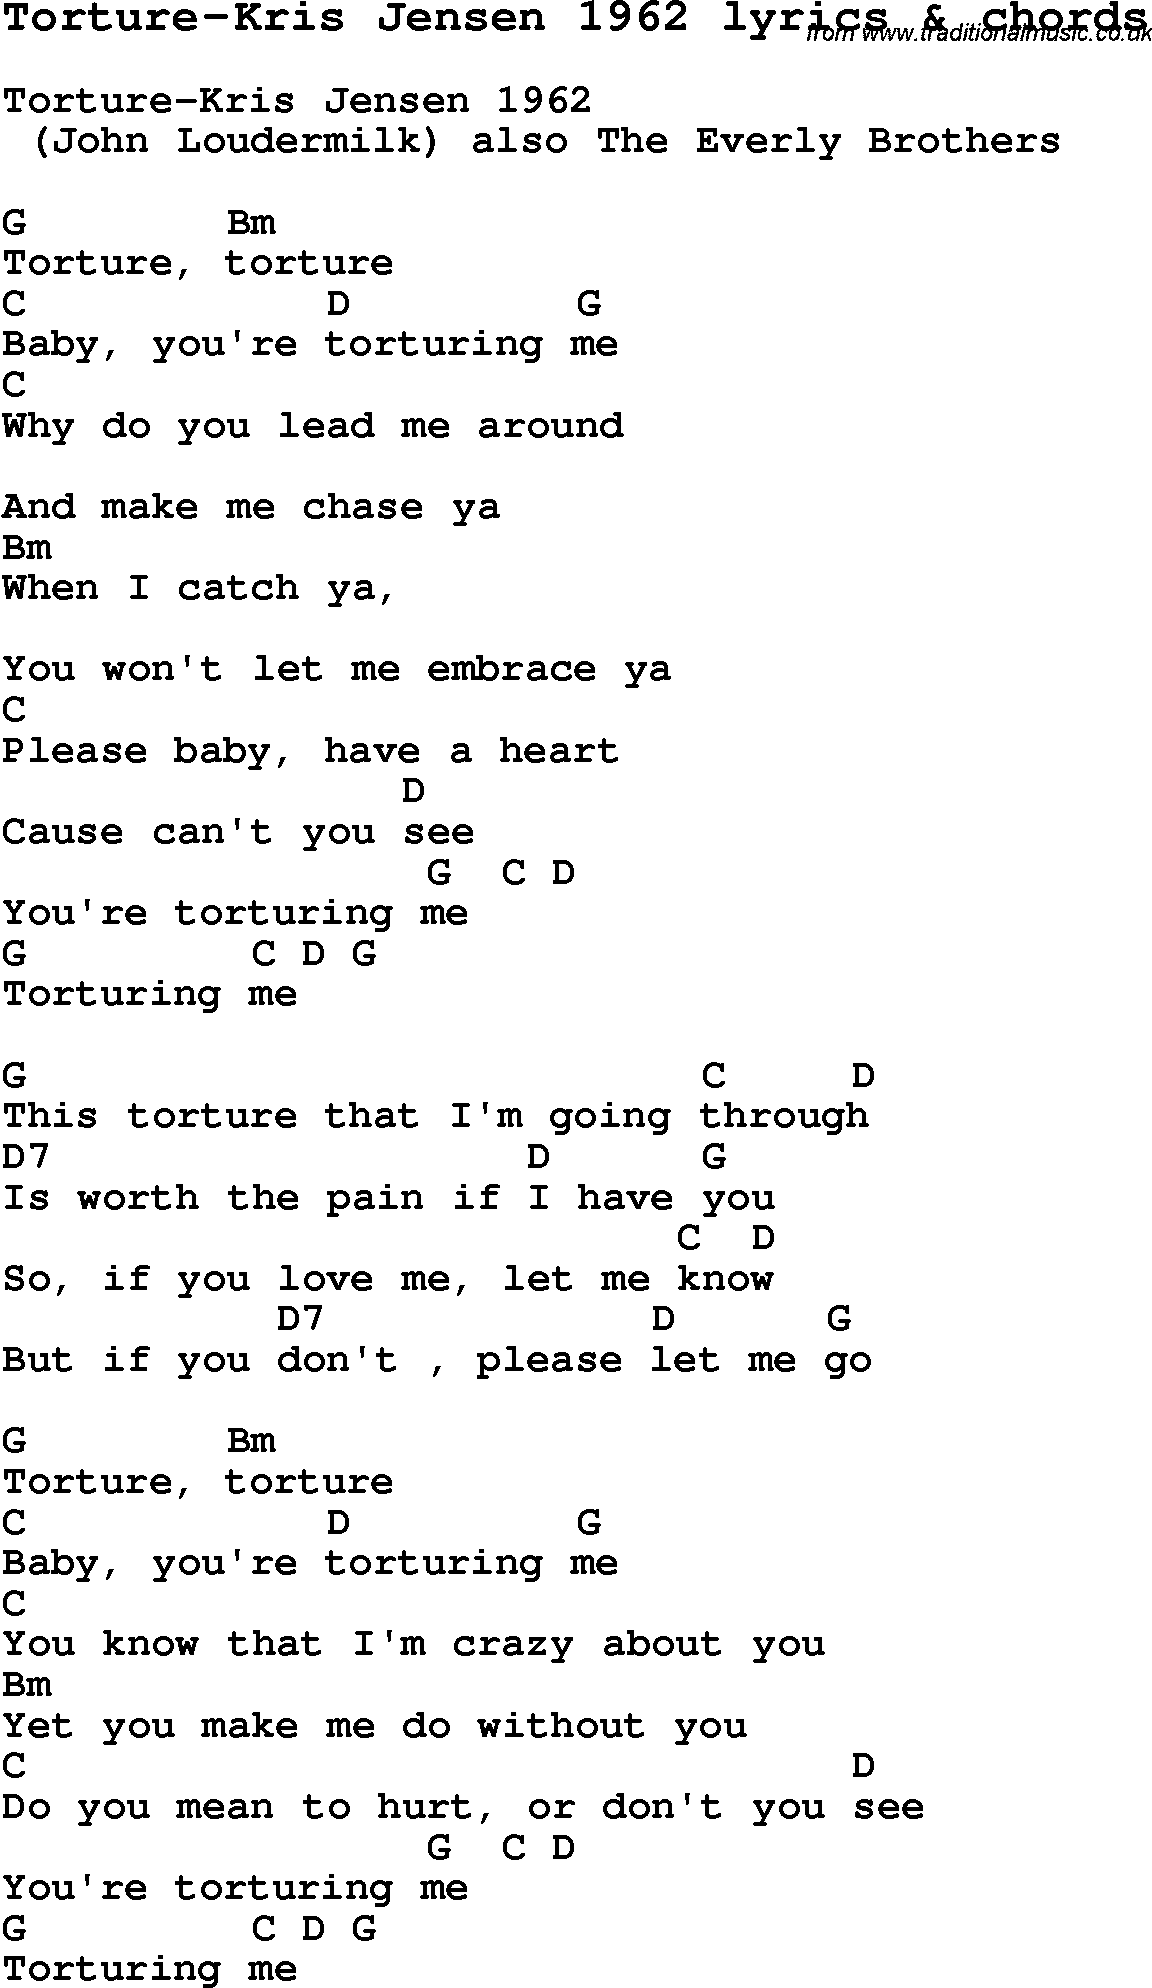 Love Song Lyrics Fortorture Kris Jensen 1962 With Chords